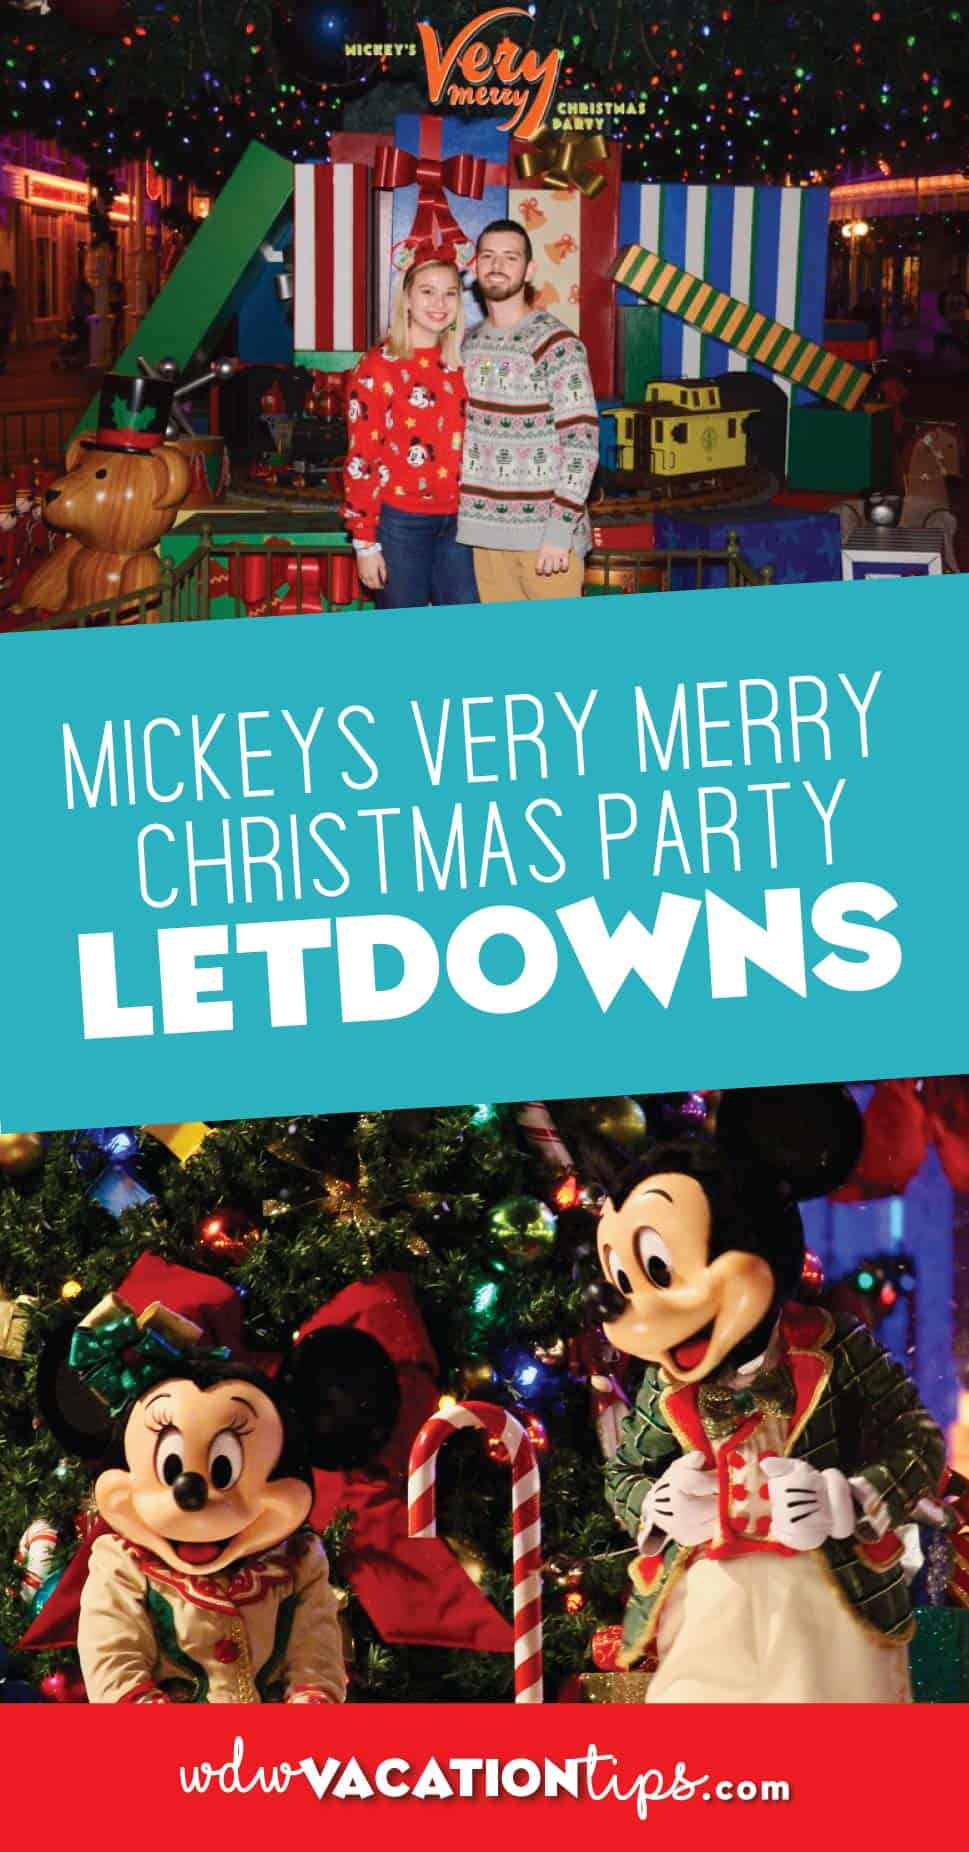 Mickeys Very Merry Christmas Party Letdowns